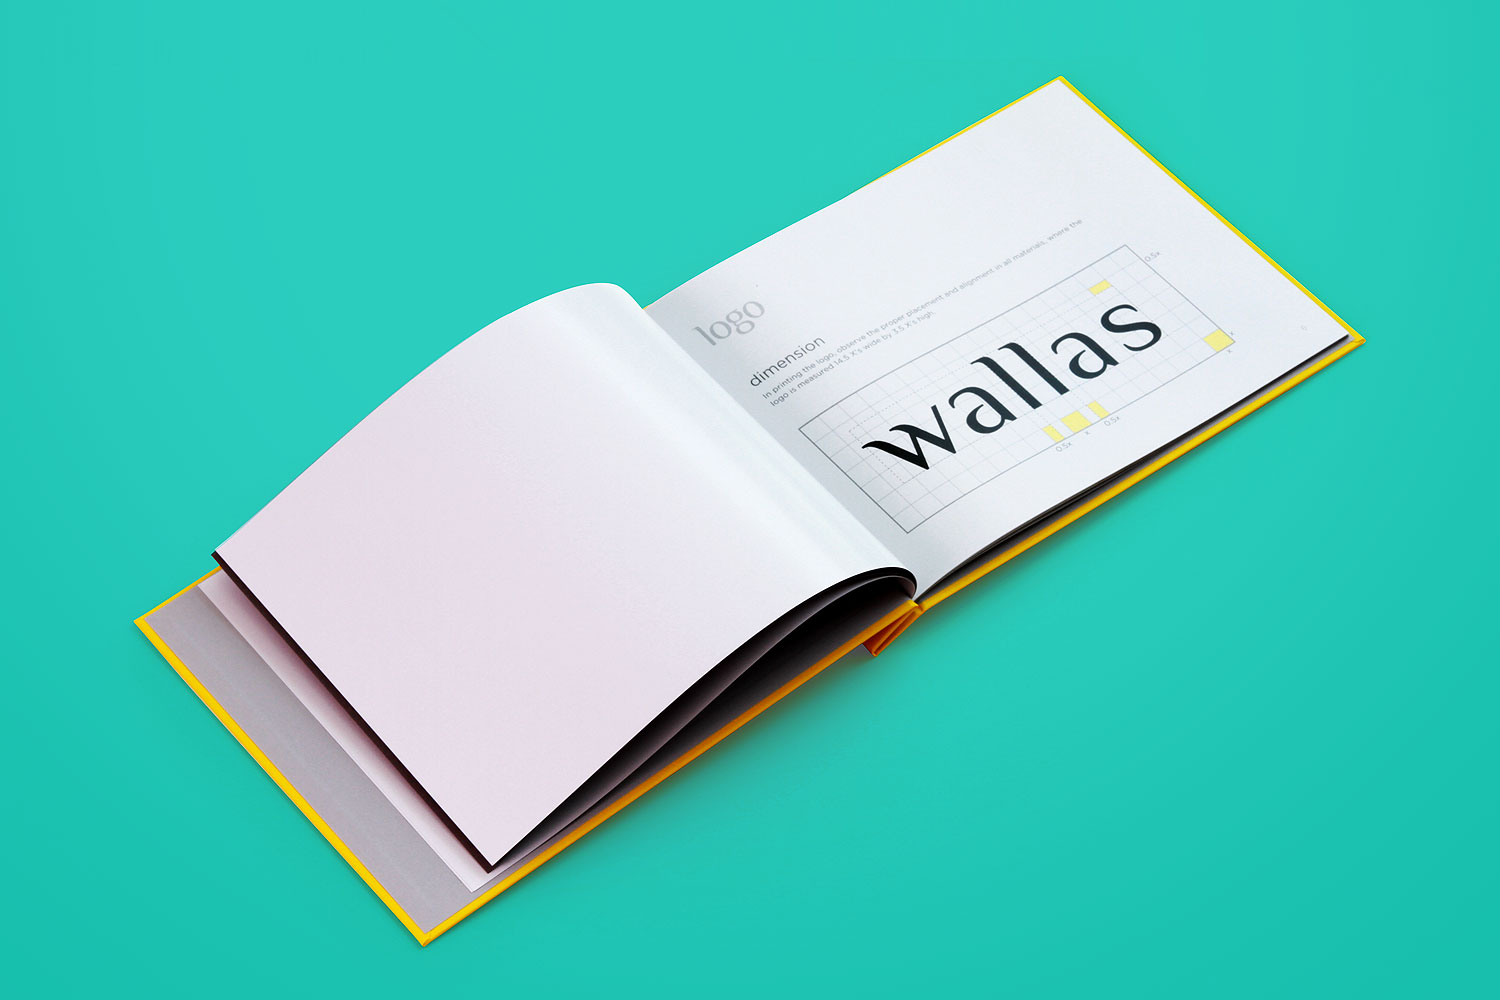 Branding identity design for Wallas Inc, an integrated agency in SG - Corporate identity guide manual - Logo dimensions guide.